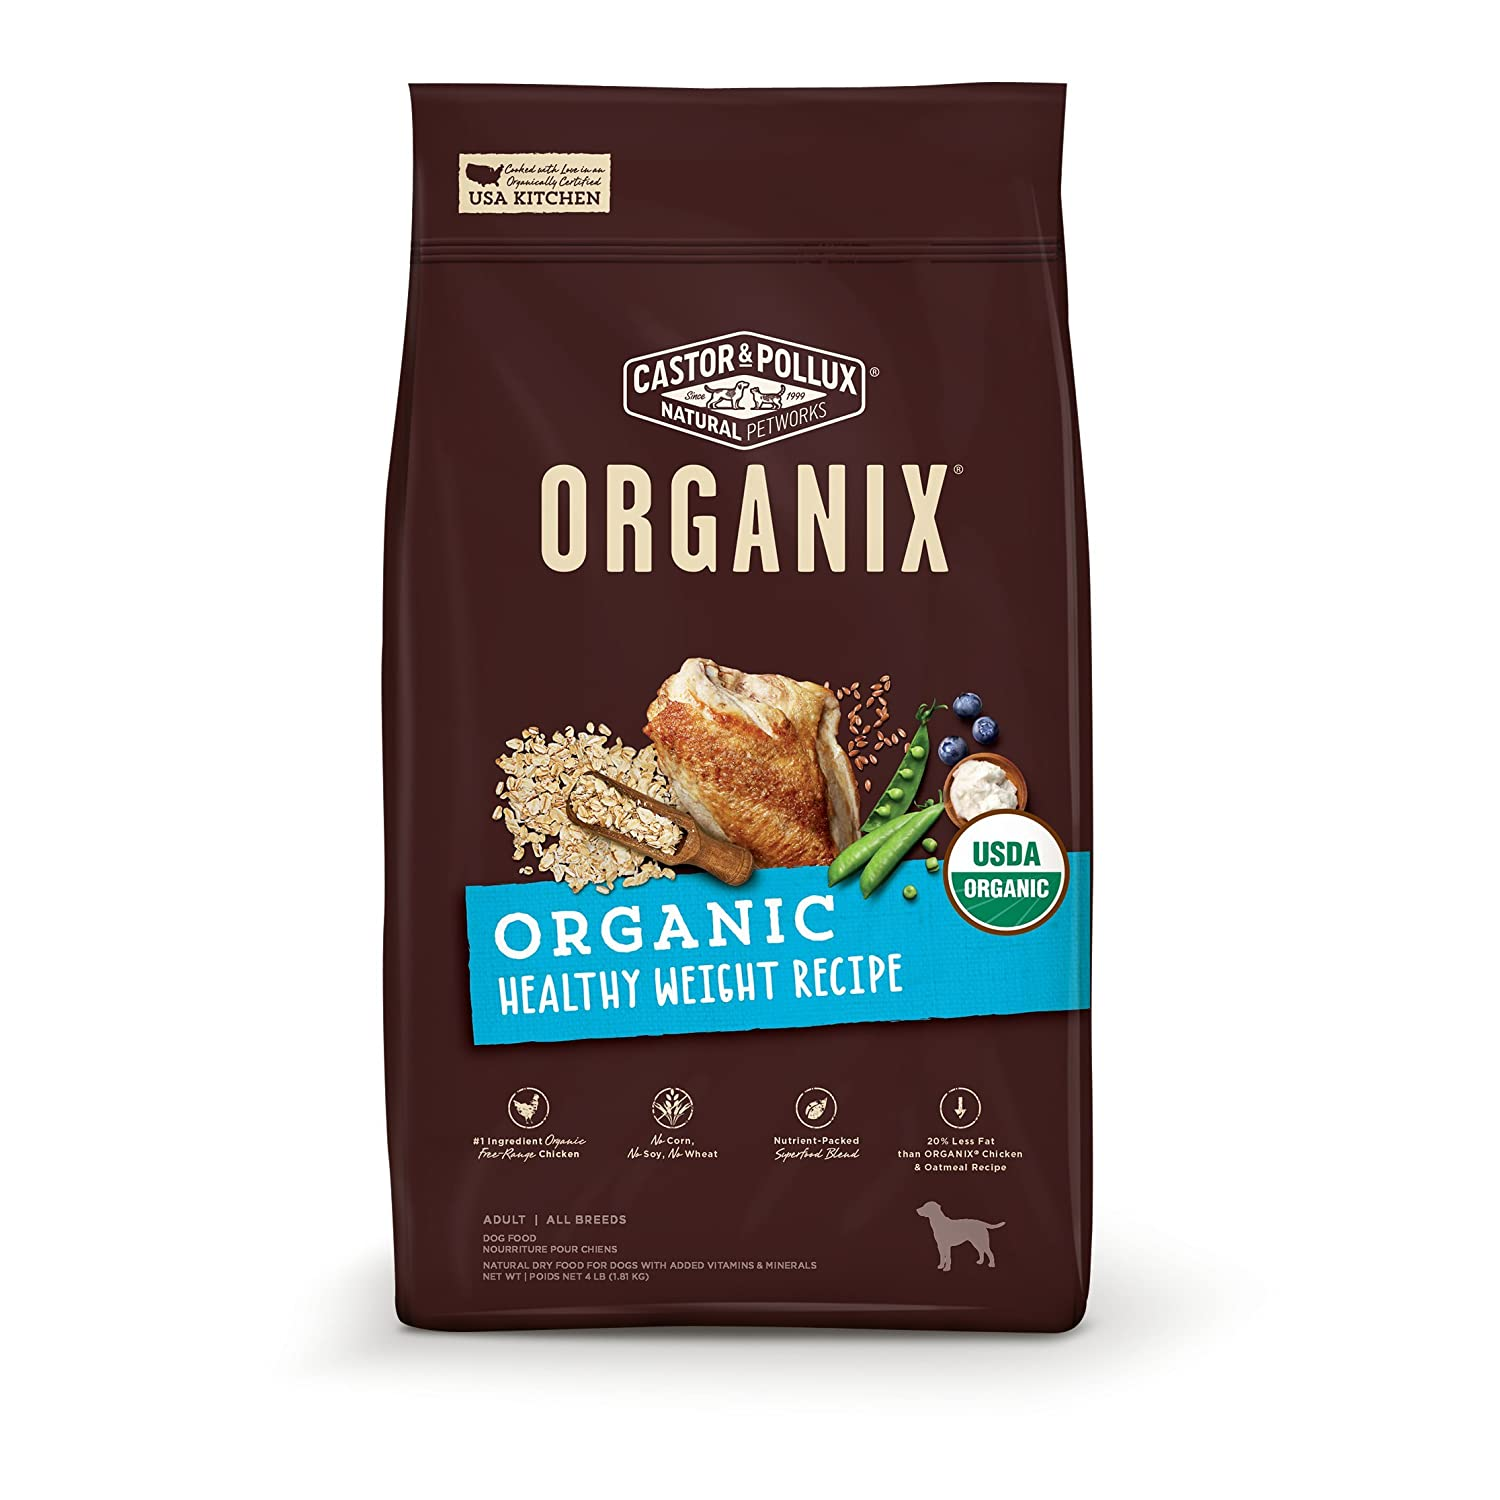 Organic Healthy Weight 4 Pound Organic Healthy Weight 4 Pound Castor & Pollux Organix Organic Healthy Weight Recipe, 4lbs